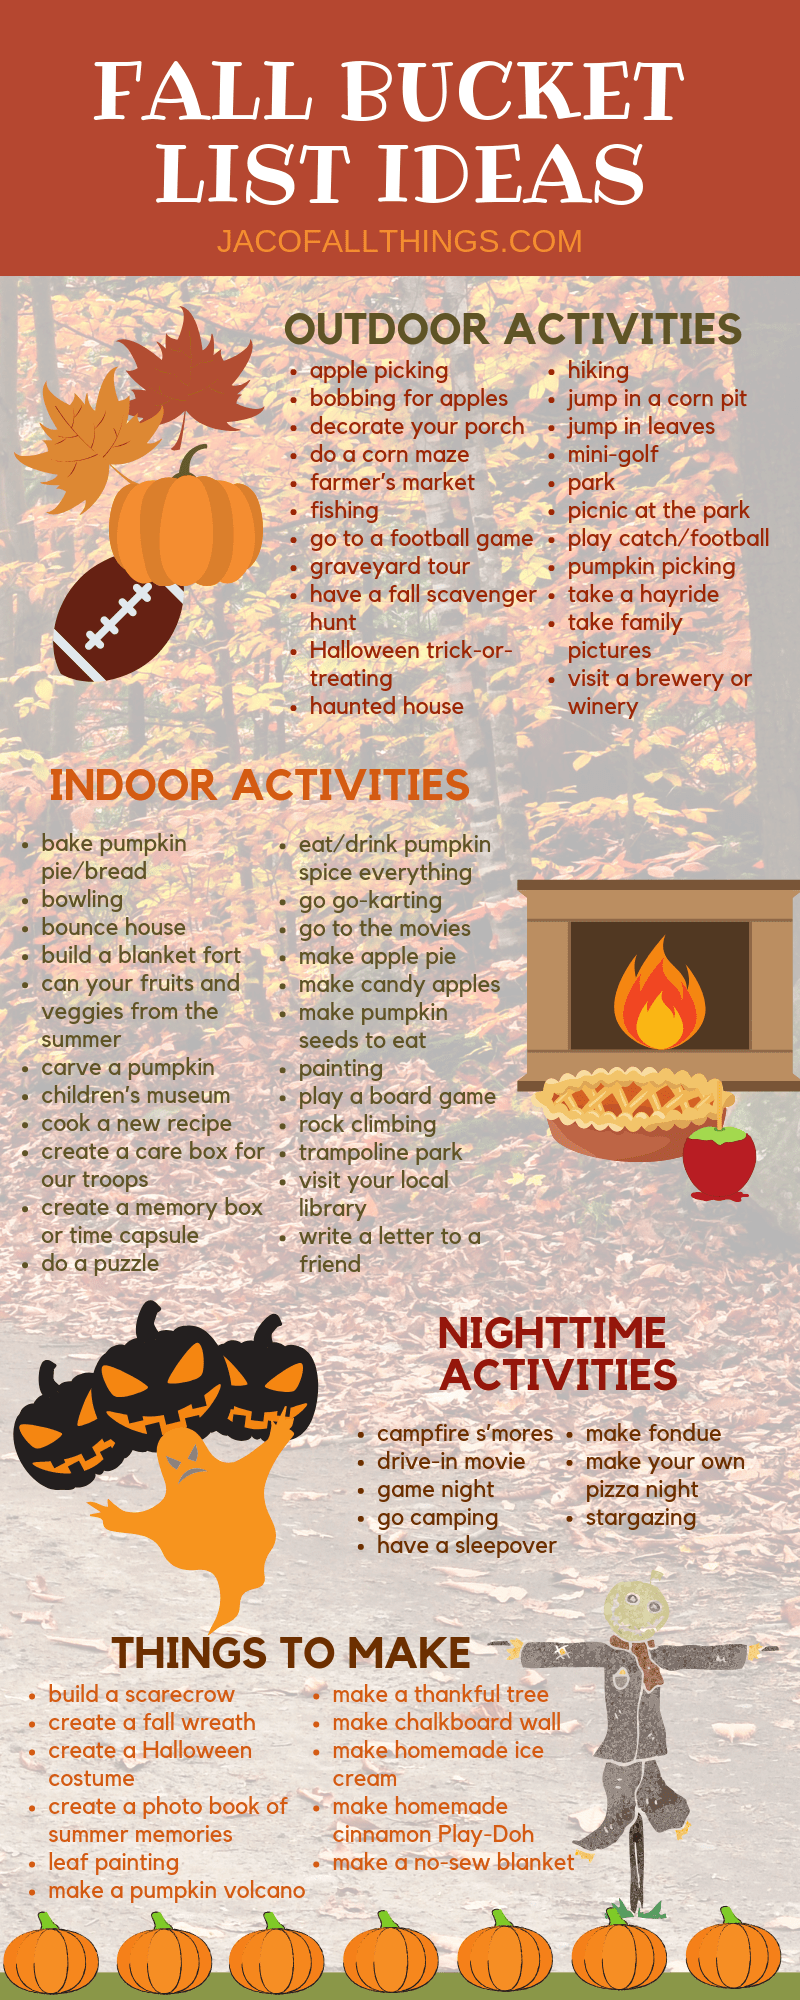 Have fun with your family this fall with these fall activities! Use these indoor and outdoor fall activity ideas to create your family fall bucket list! #fall #fallactivities #fallbucketlist